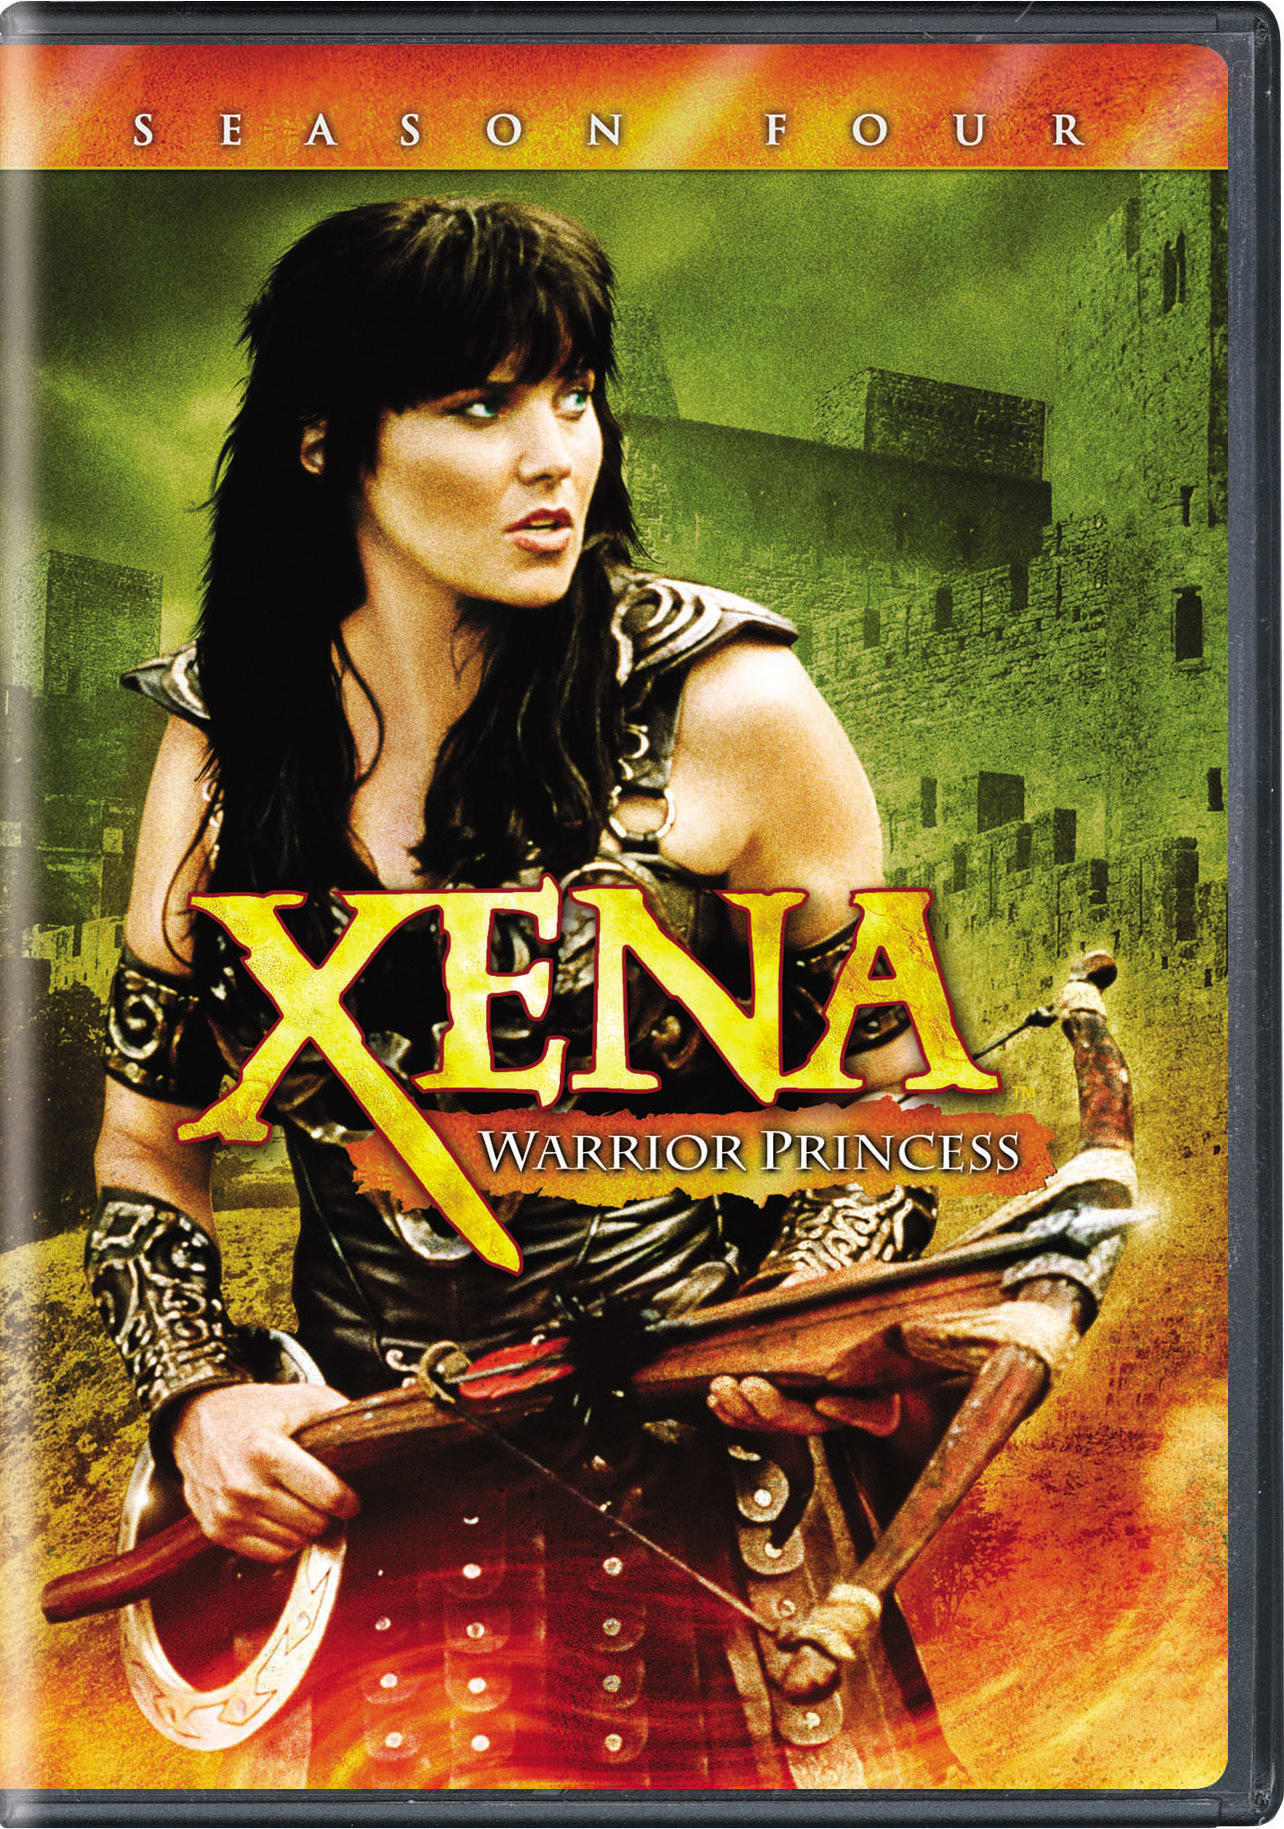 Xena - Warrior Princess: Complete Season 4 [DVD]